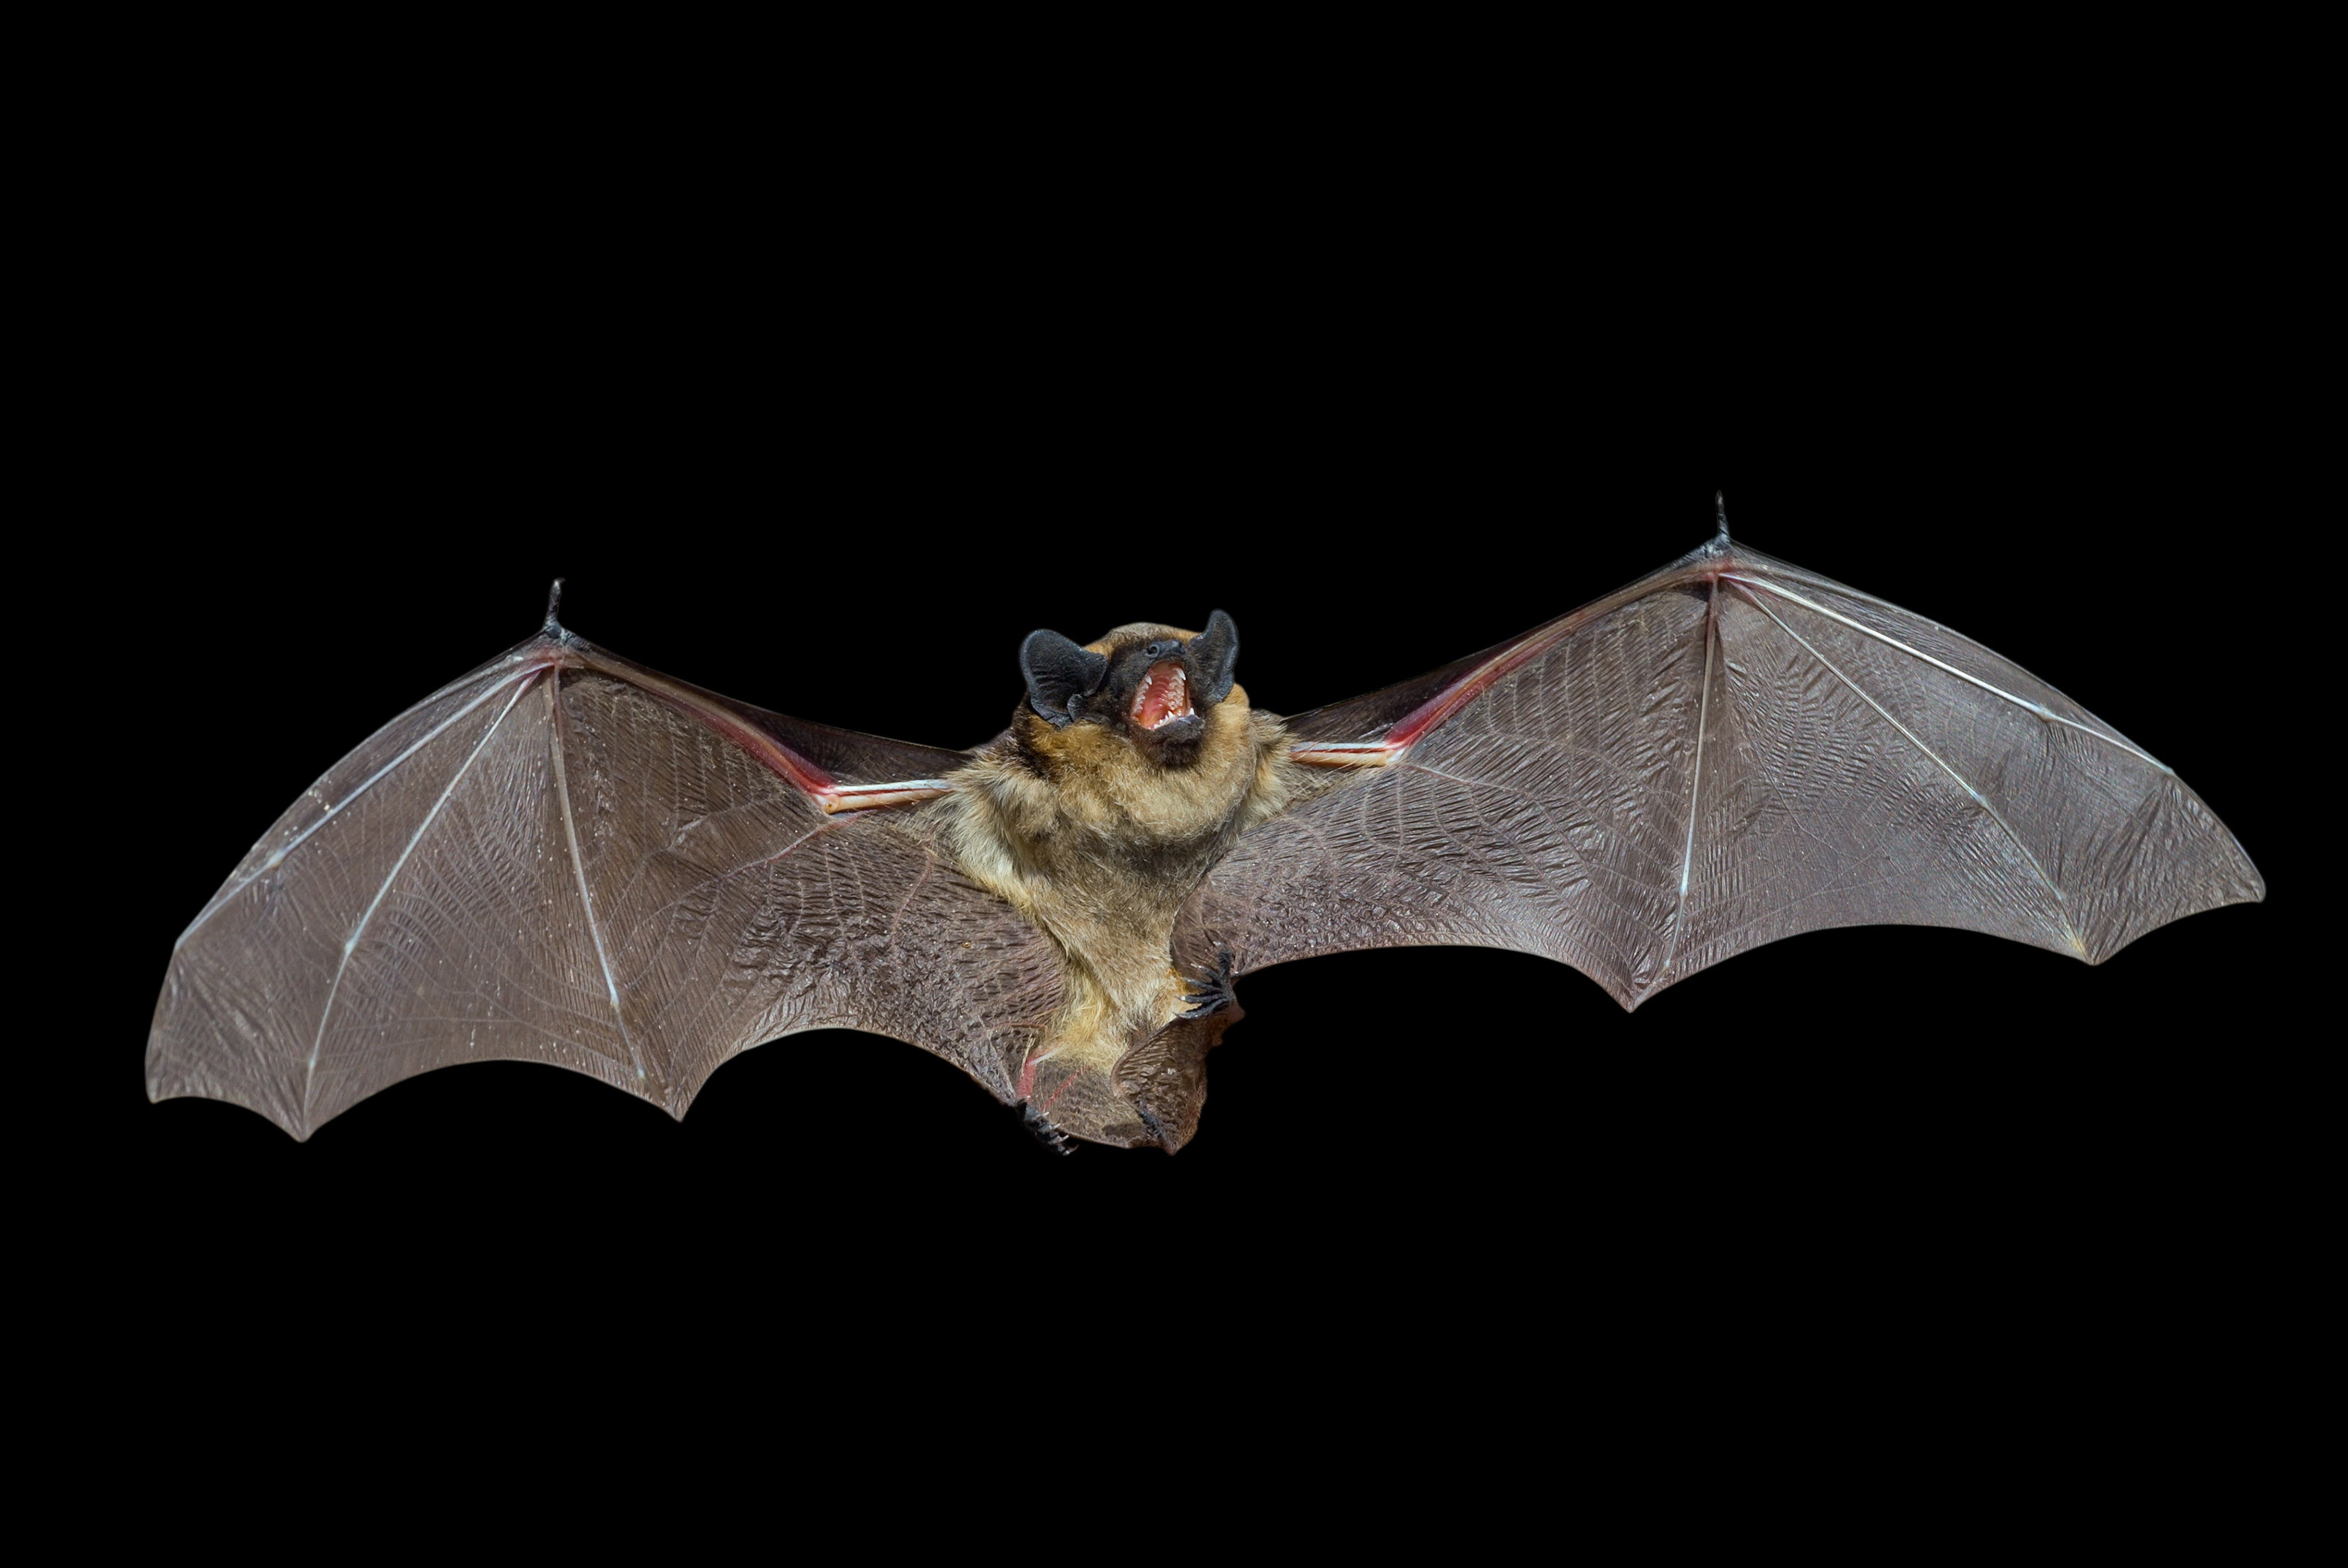 America Finally Has Its First Death By Vampire Bat